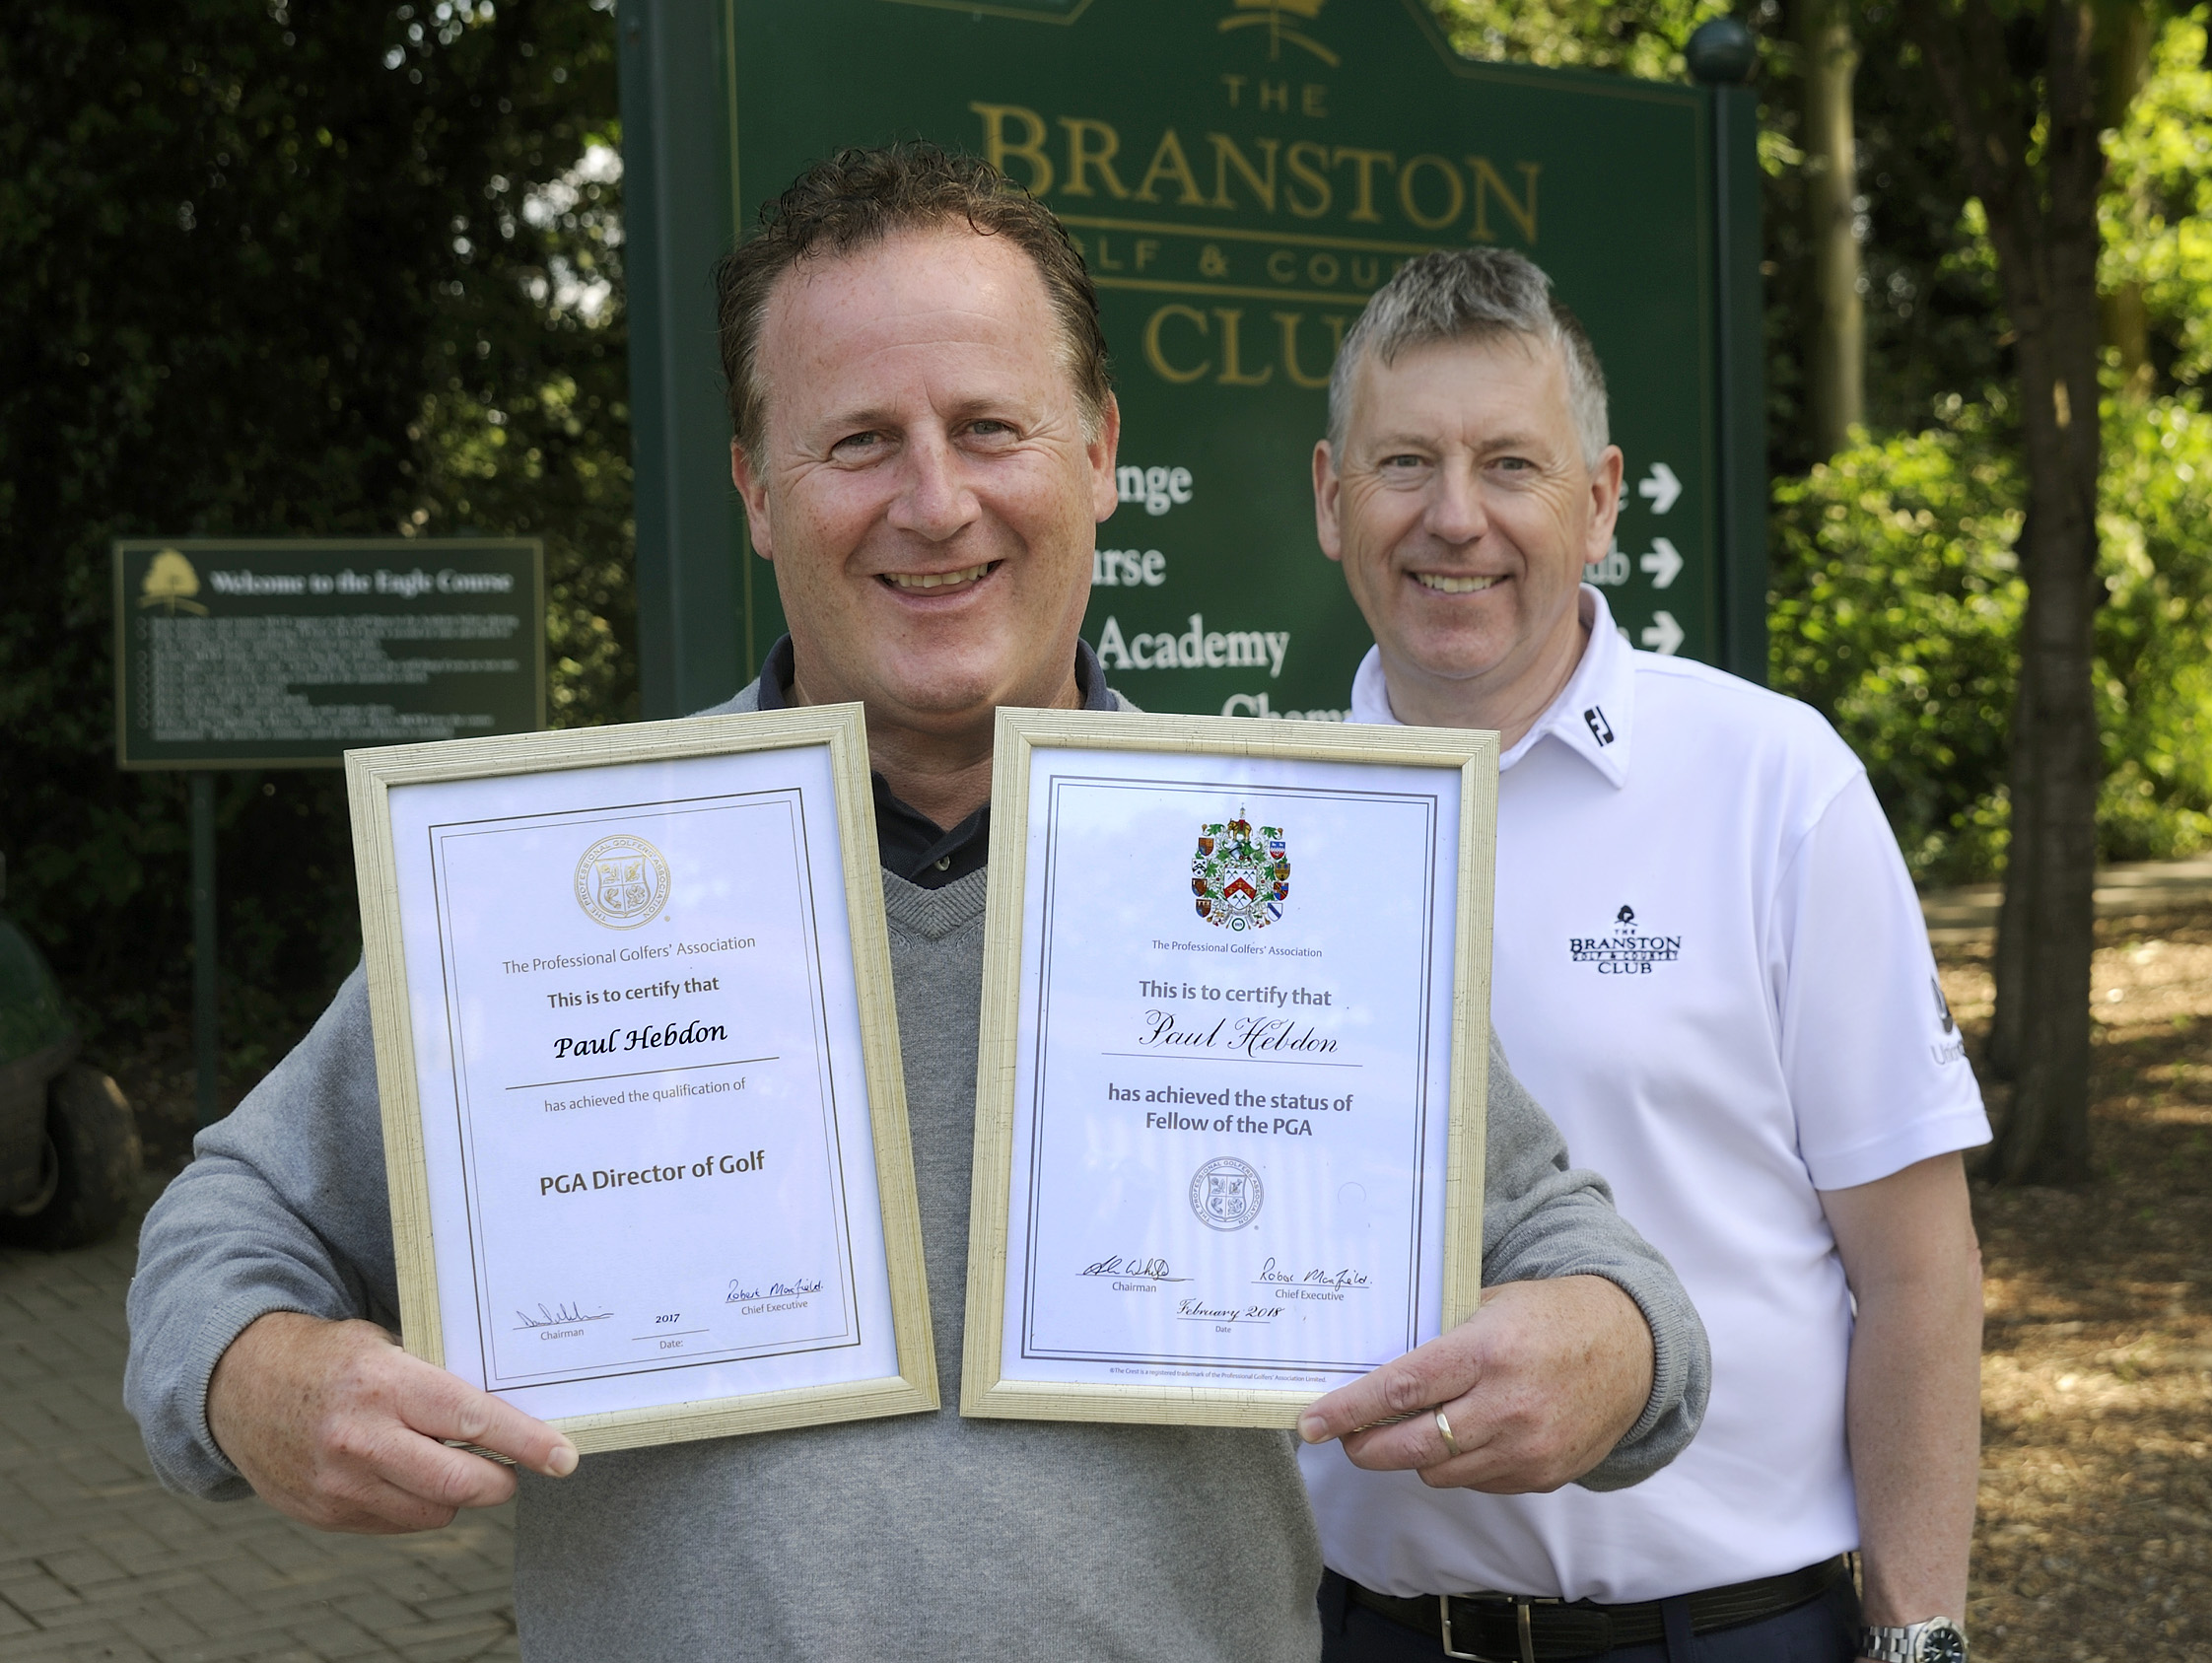 Paul Hebdon from Branston Golf & Country Club's Golf Academy proudly holding his PGA new membership certificates.